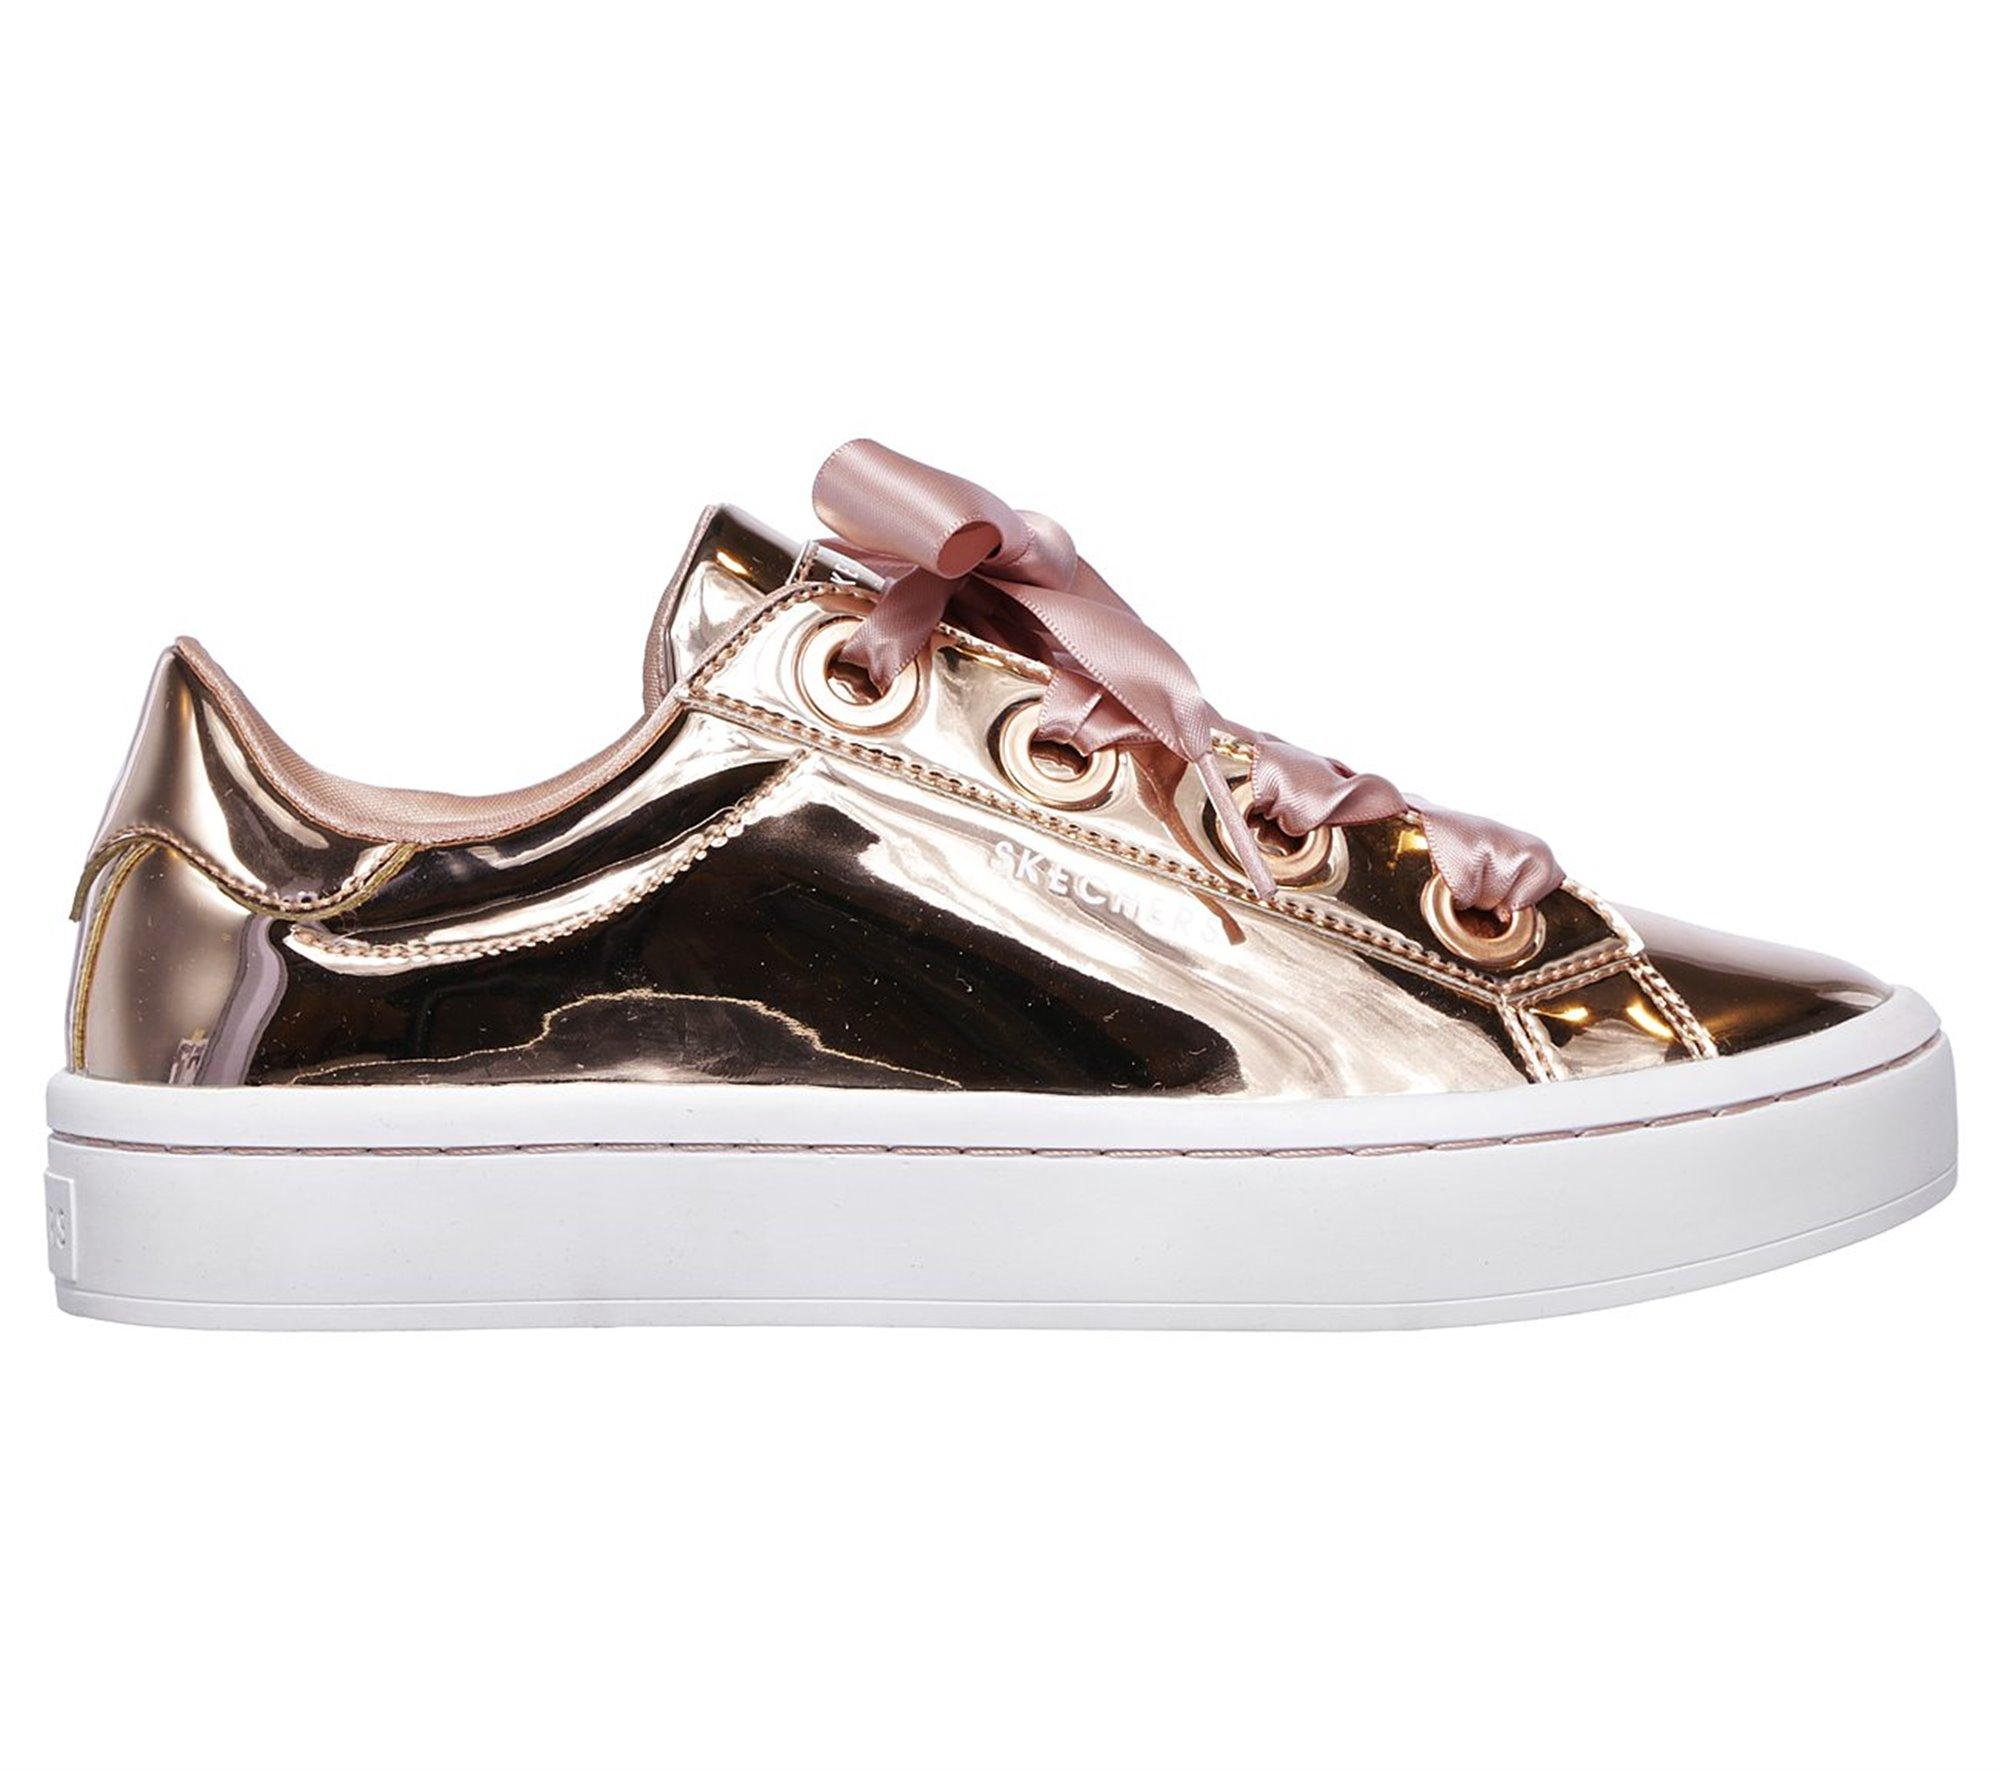 d267796168ec Lyst - Skechers Hi-lites - Liquid Bling in Pink